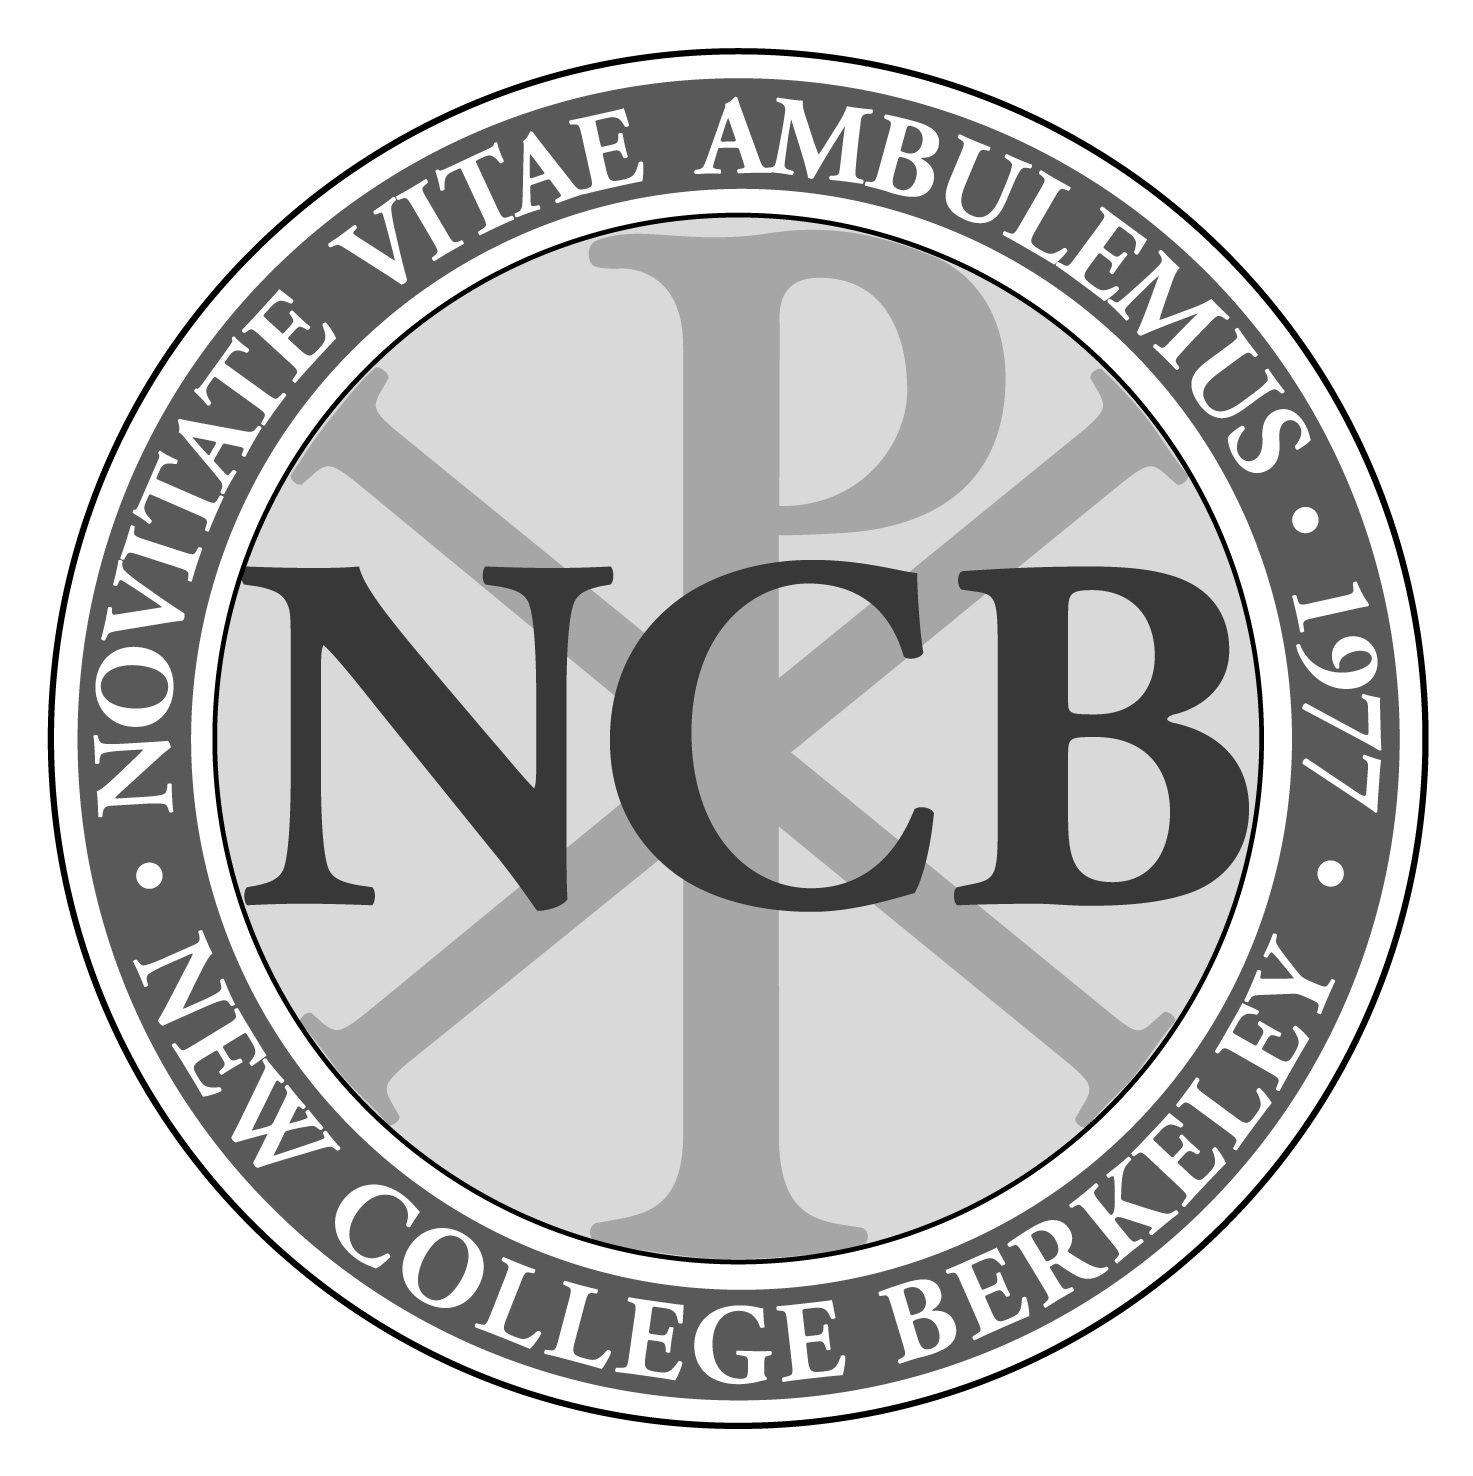 About our programs — NEW COLLEGE BERKELEY